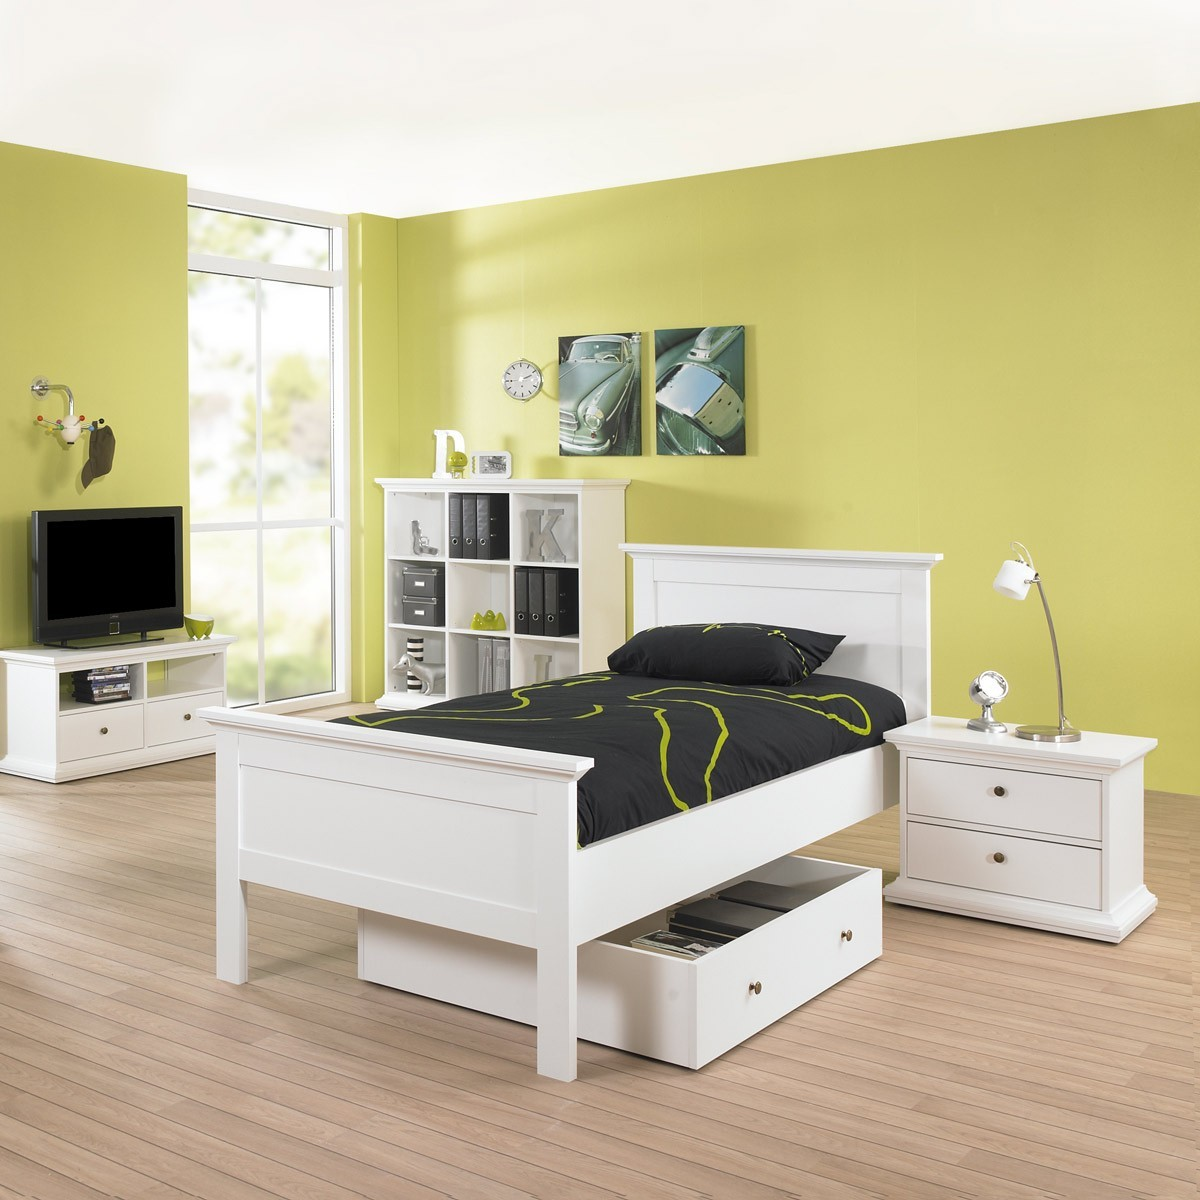 ikea bett weis 90x200 m bel inspiration und innenraum ideen. Black Bedroom Furniture Sets. Home Design Ideas